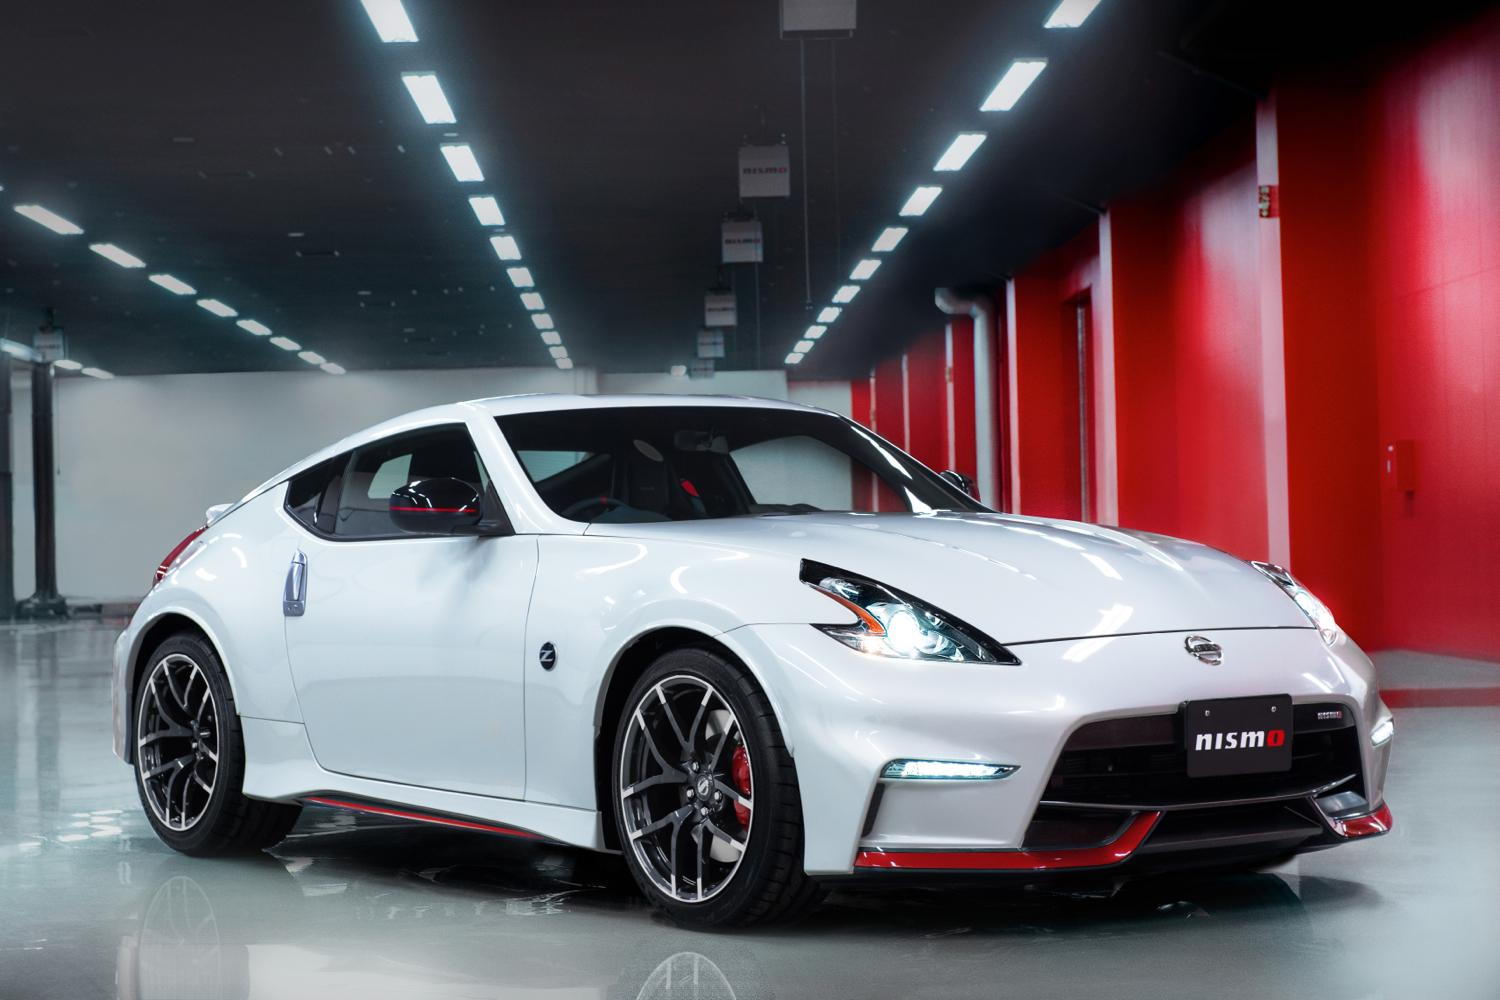 2015 nissan 370z nismo revealed with gt r styling and more. Black Bedroom Furniture Sets. Home Design Ideas